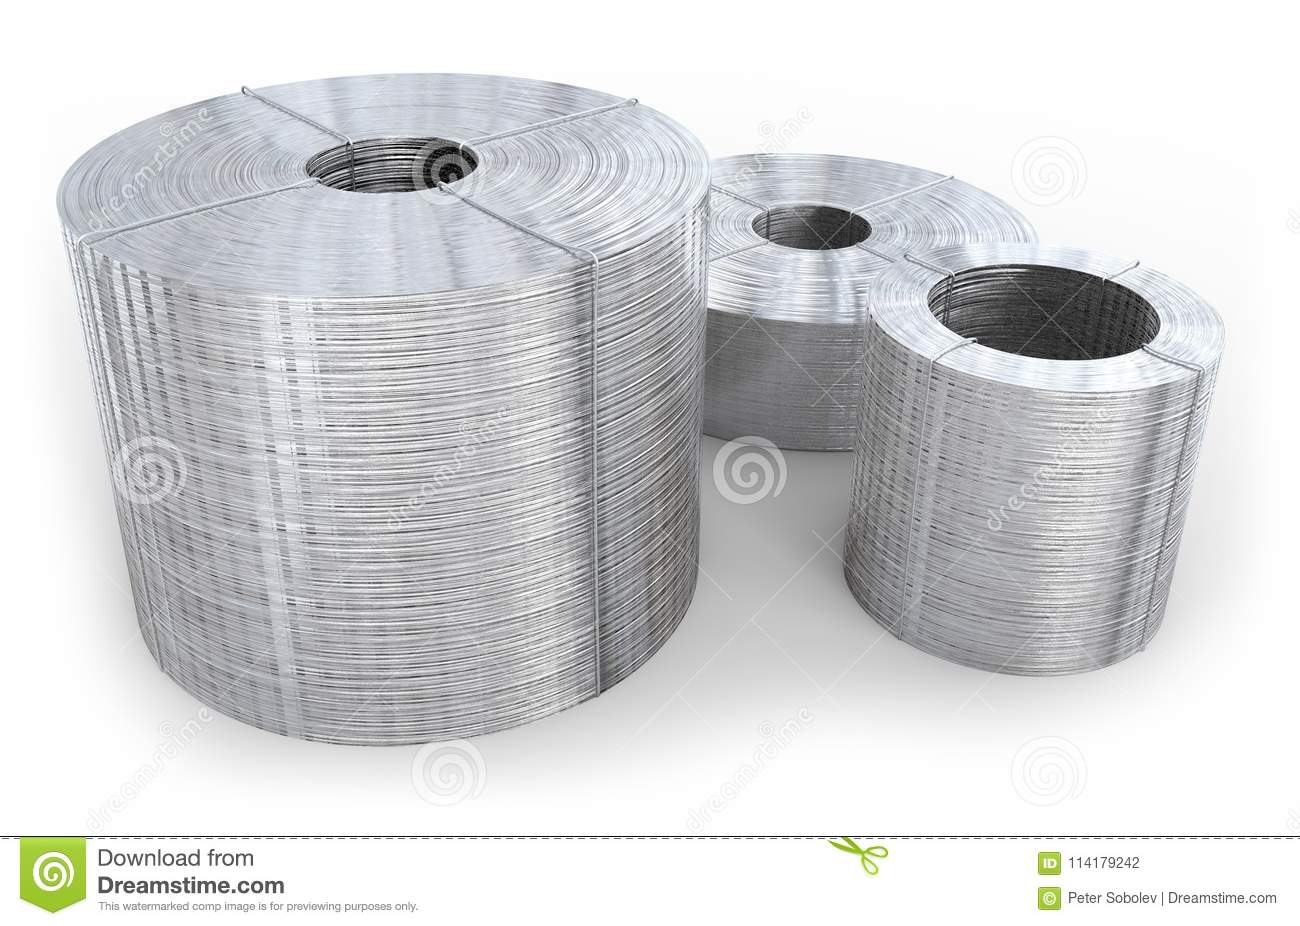 Coil of wire stock illustration. Illustration of iron - 114179242